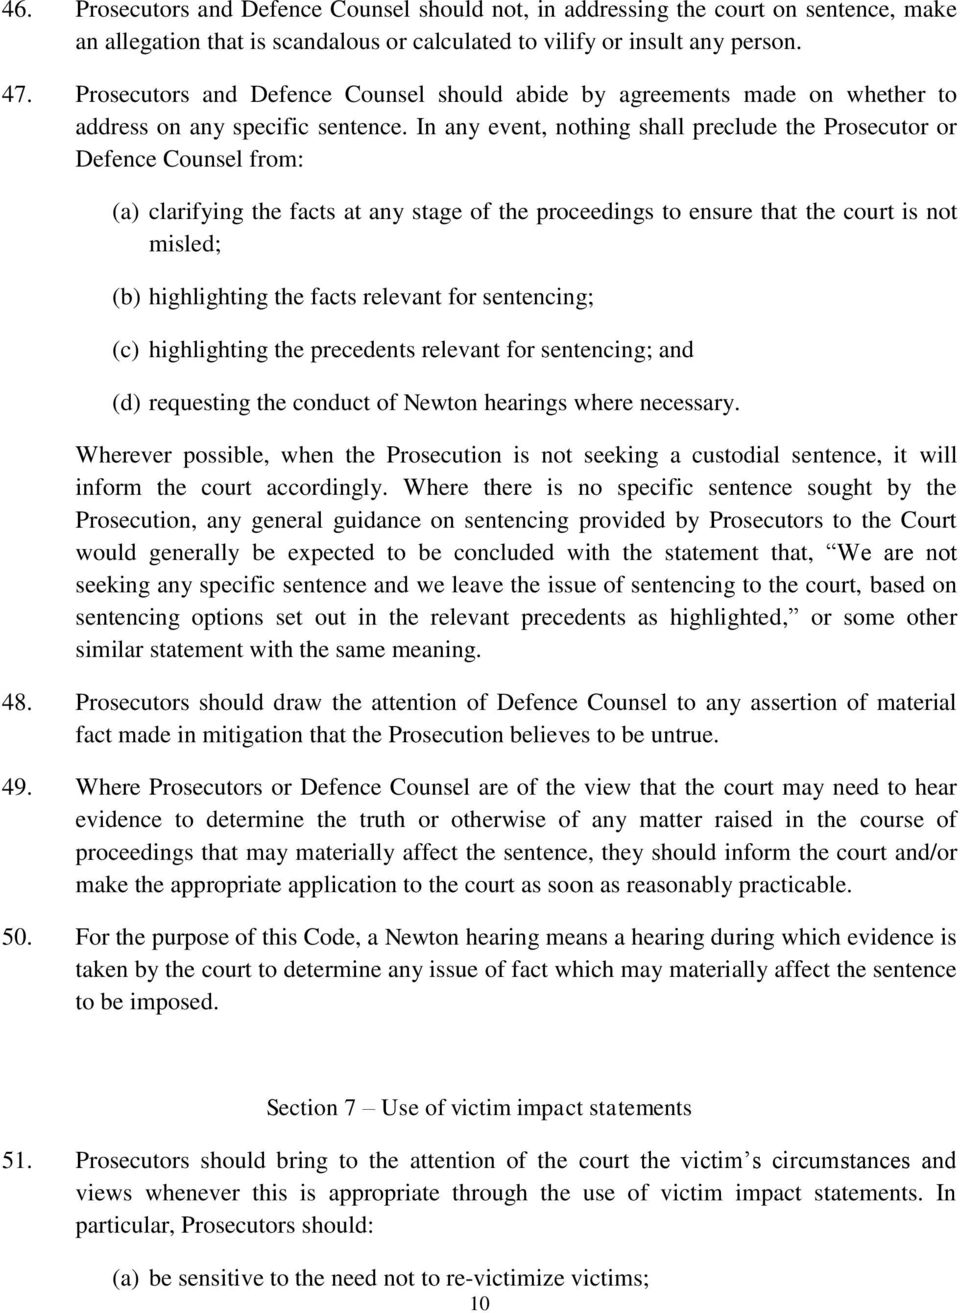 In any event, nothing shall preclude the Prosecutor or Defence Counsel from: (a) clarifying the facts at any stage of the proceedings to ensure that the court is not misled; (b) highlighting the